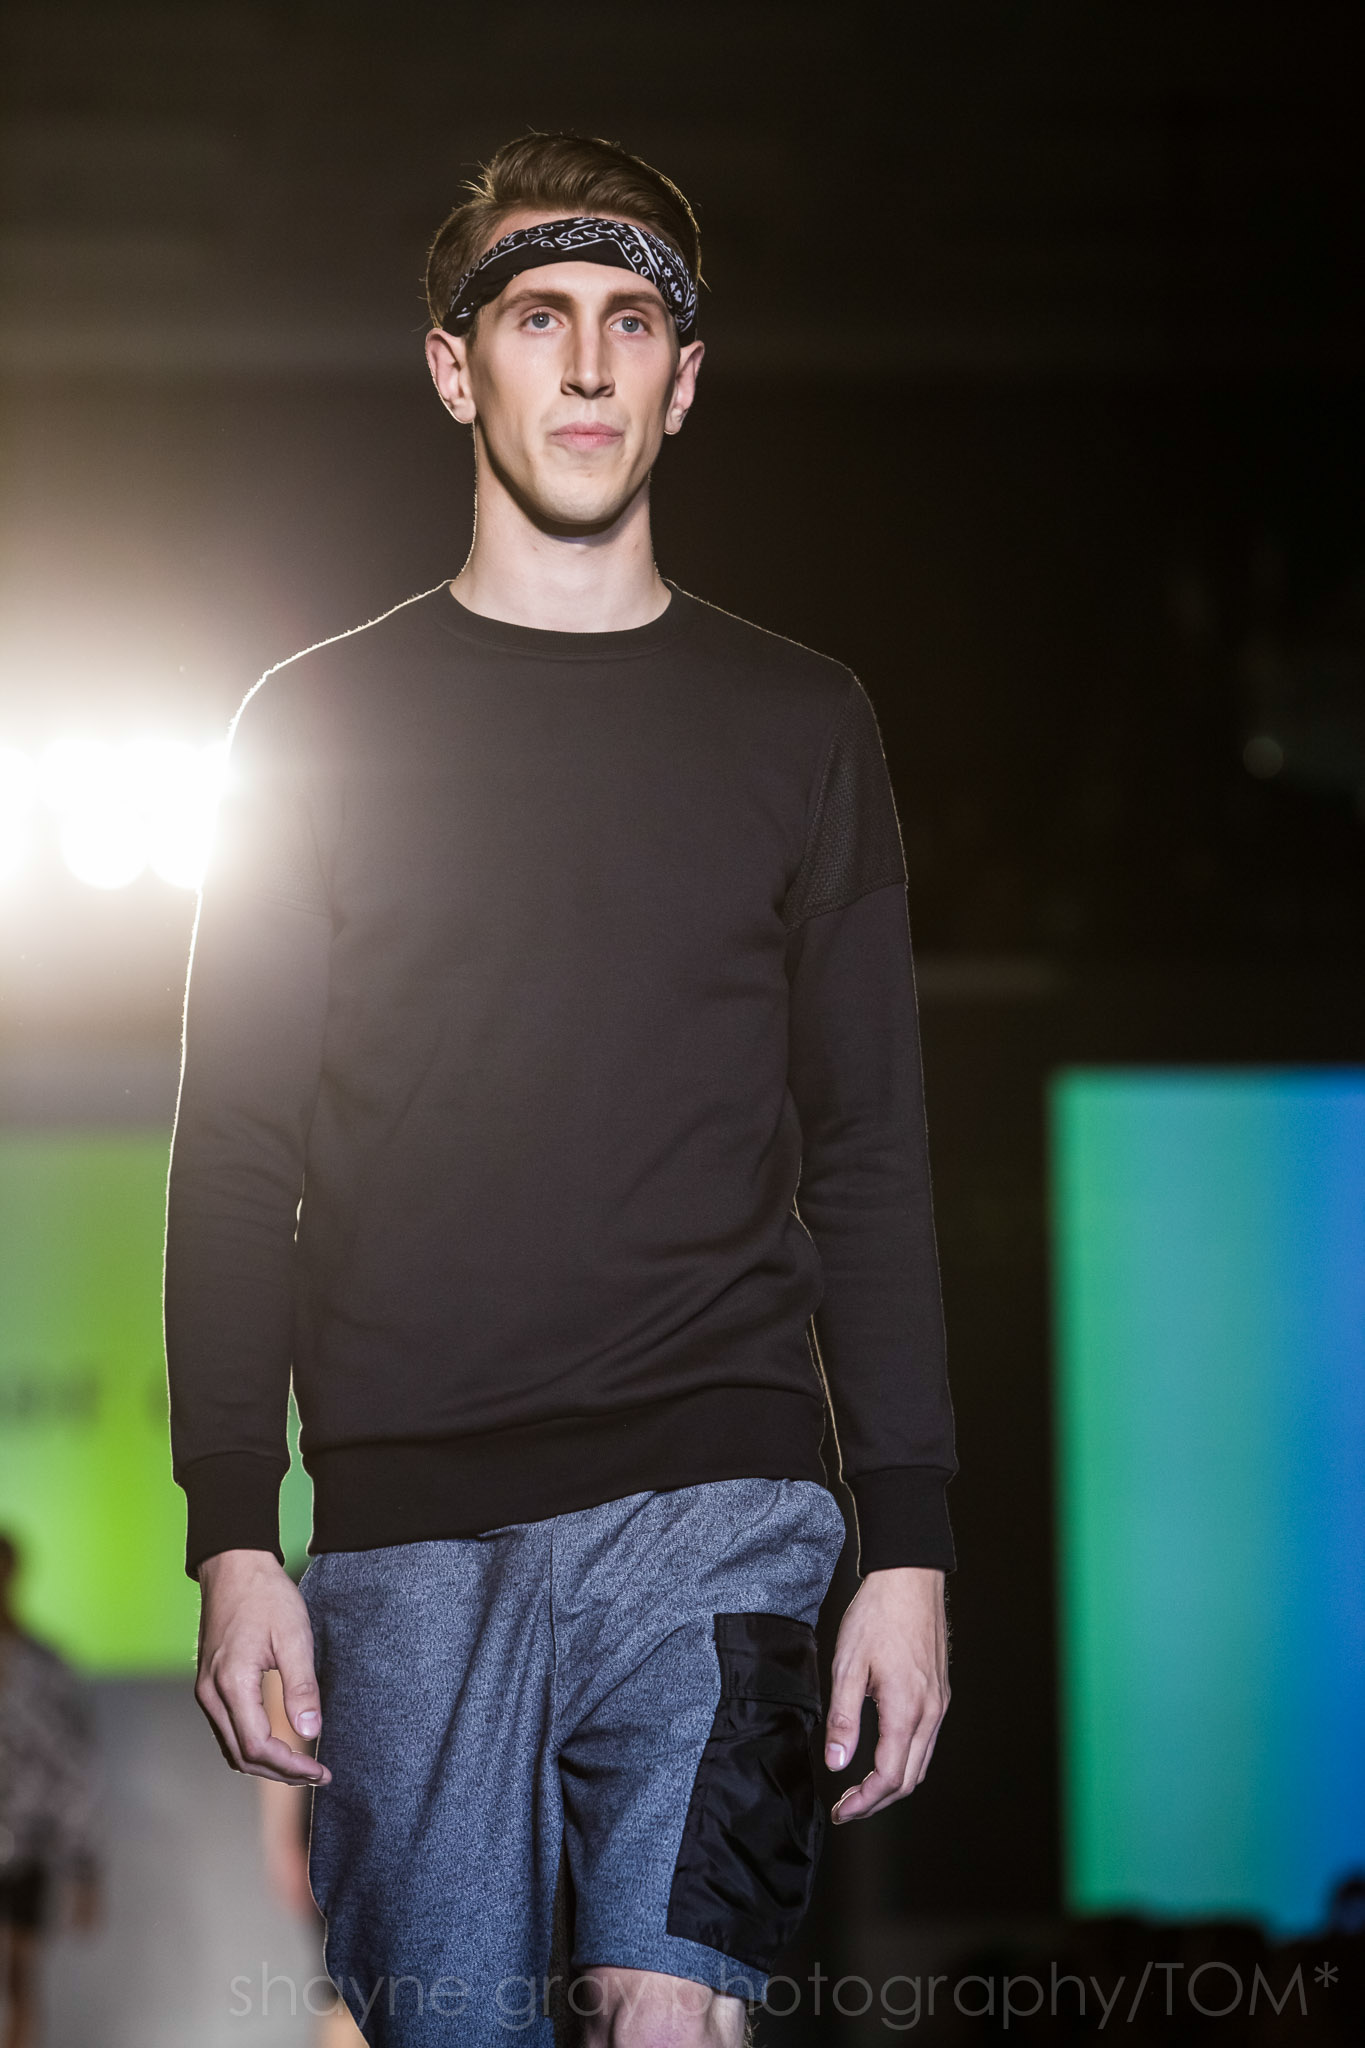 Shayne-Gray-Toronto-men's-fashion_week-TOM-sons-of-odin-8532.jpg